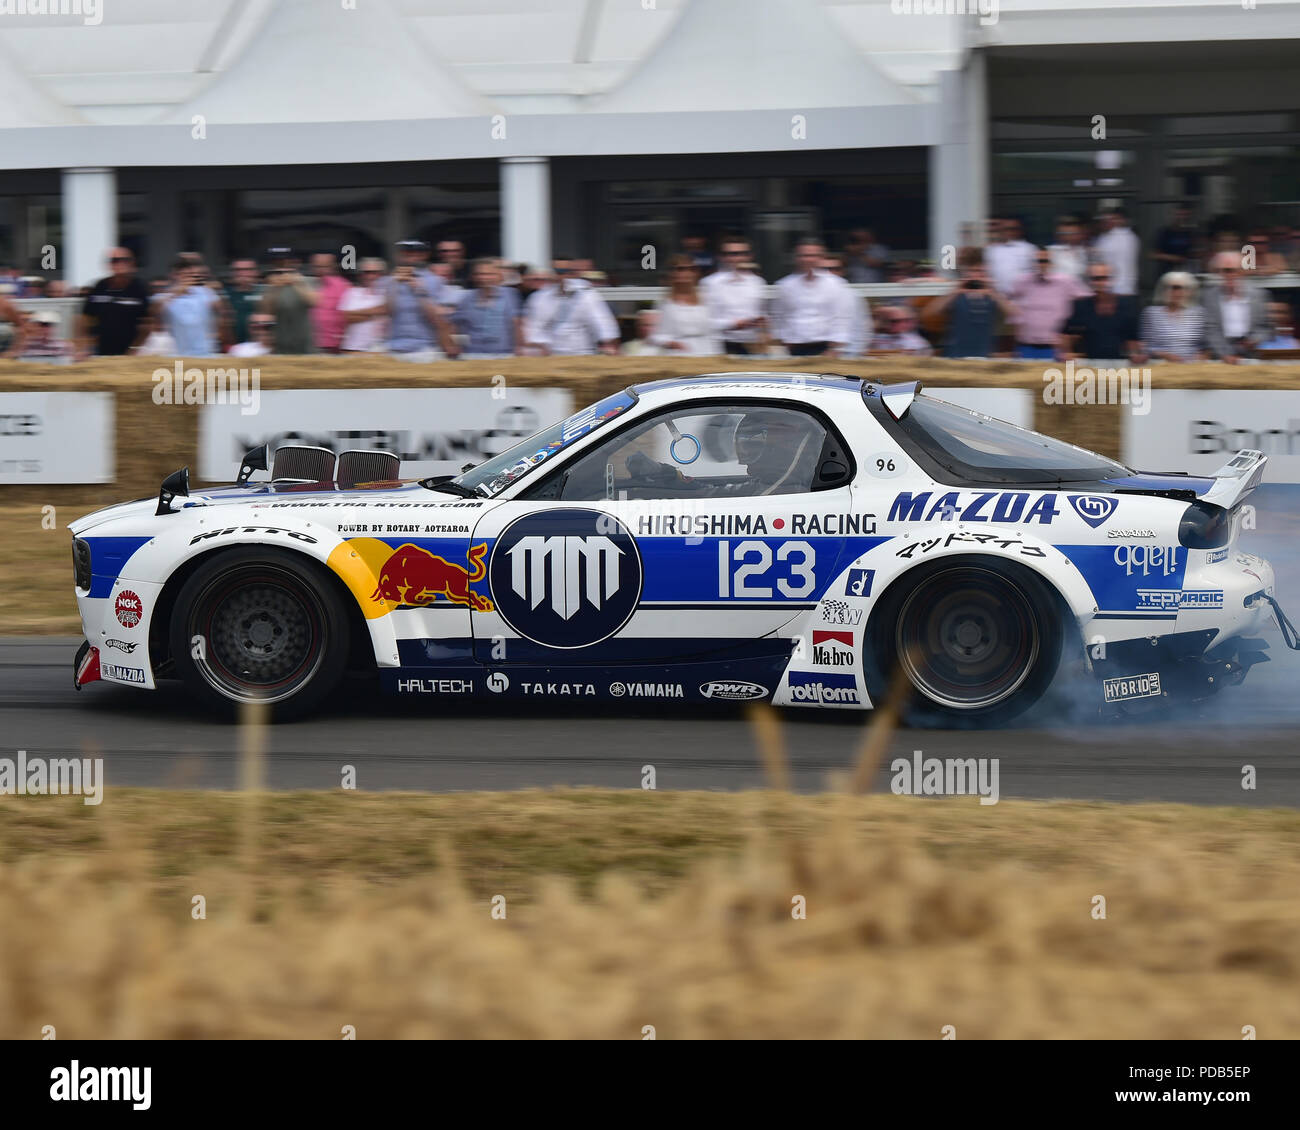 Rx7 Stock Photos & Rx7 Stock Images - Alamy